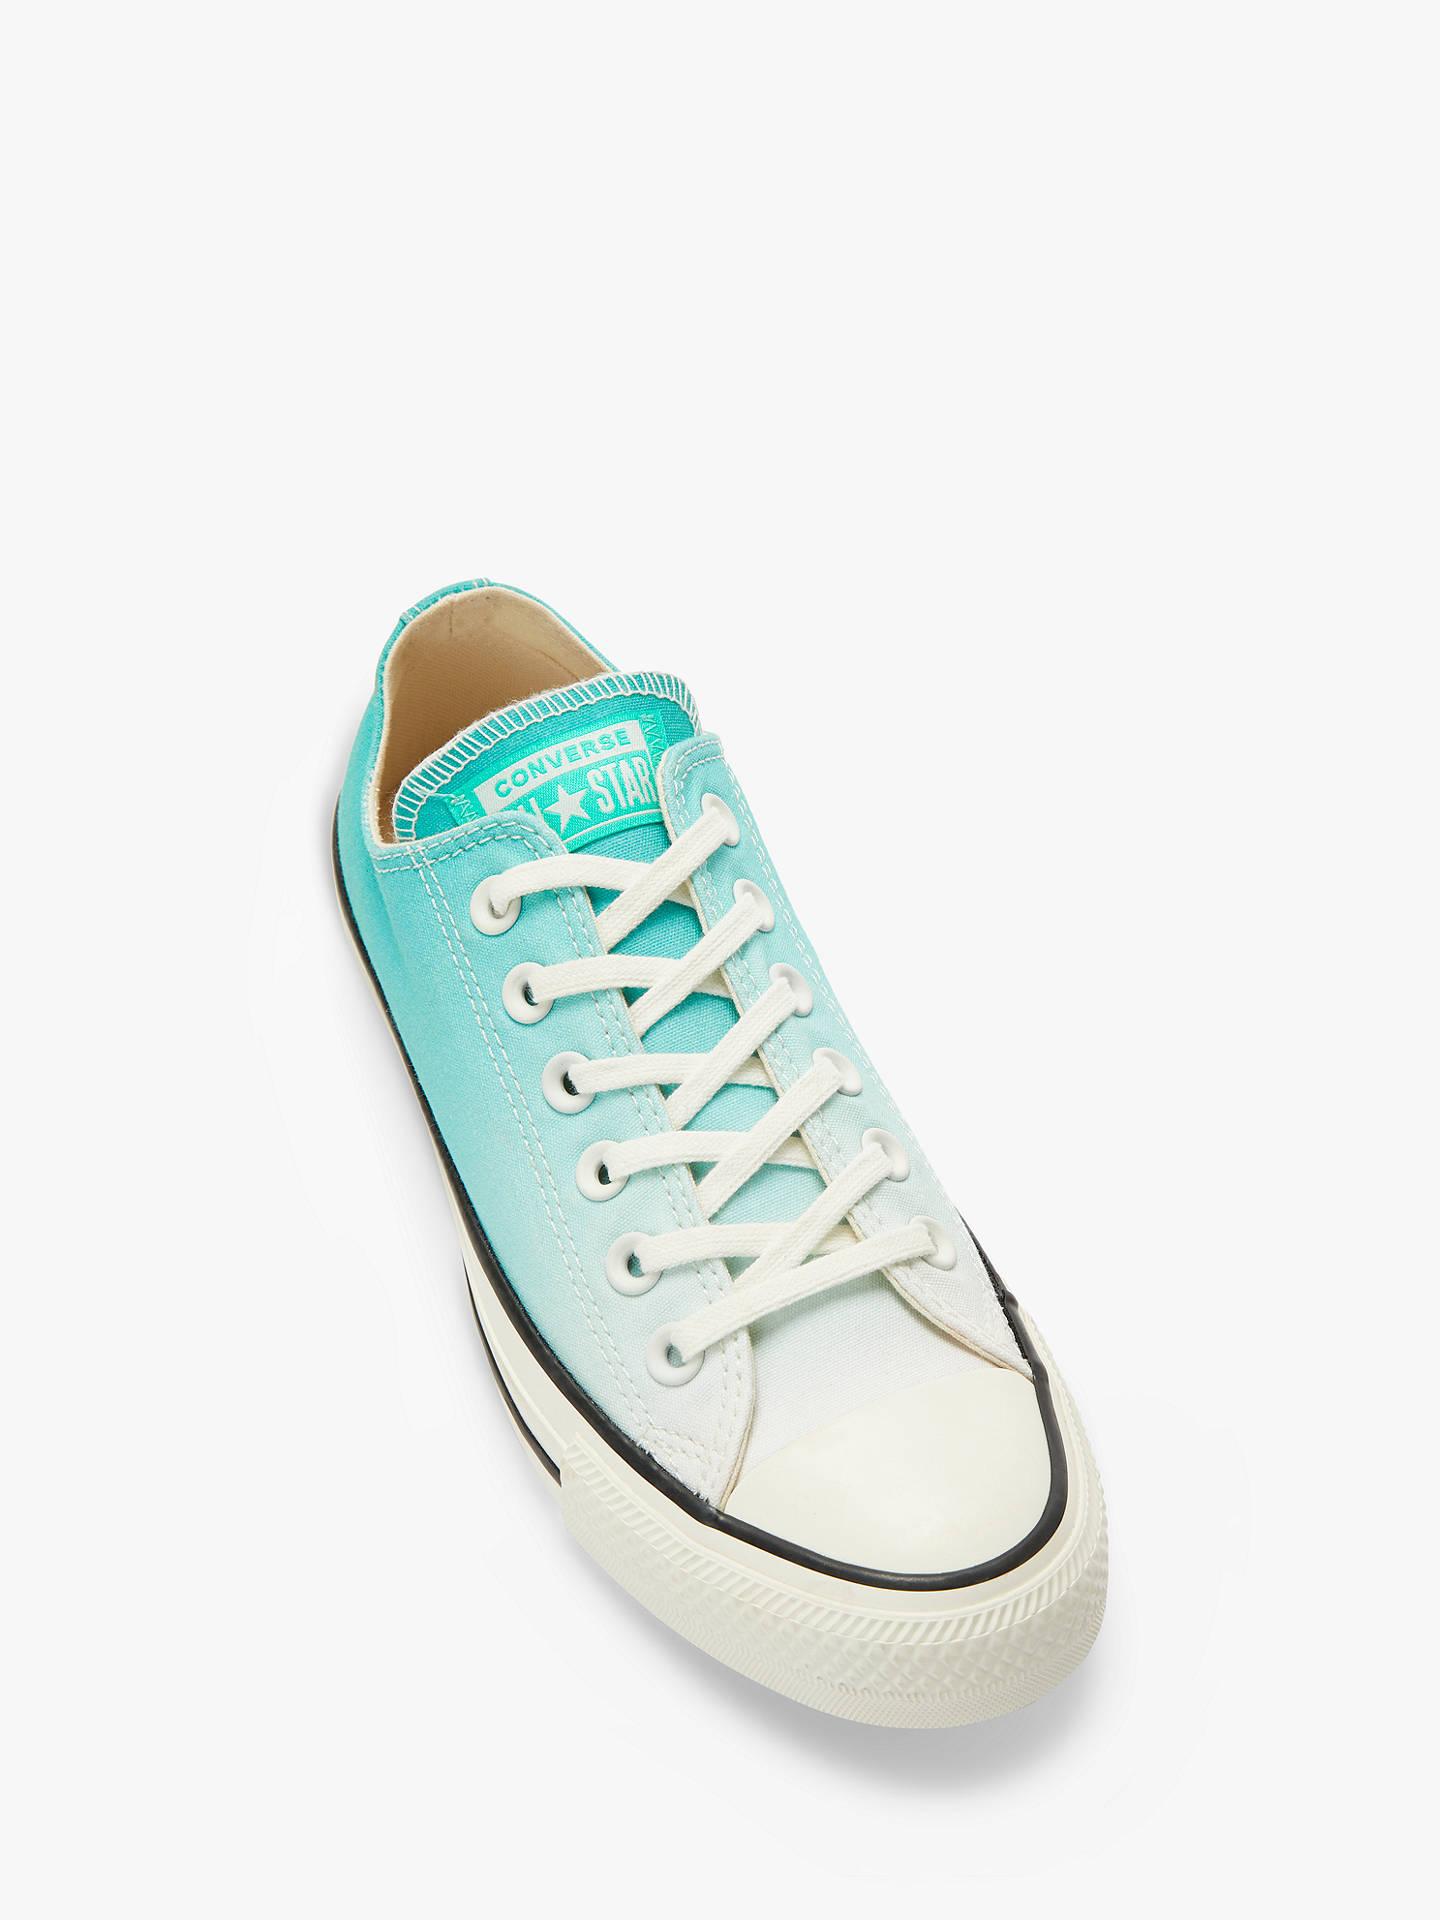 05b8b627c19f Converse Chuck Taylor All Star Ox Ombre Effect Trainers at John ...